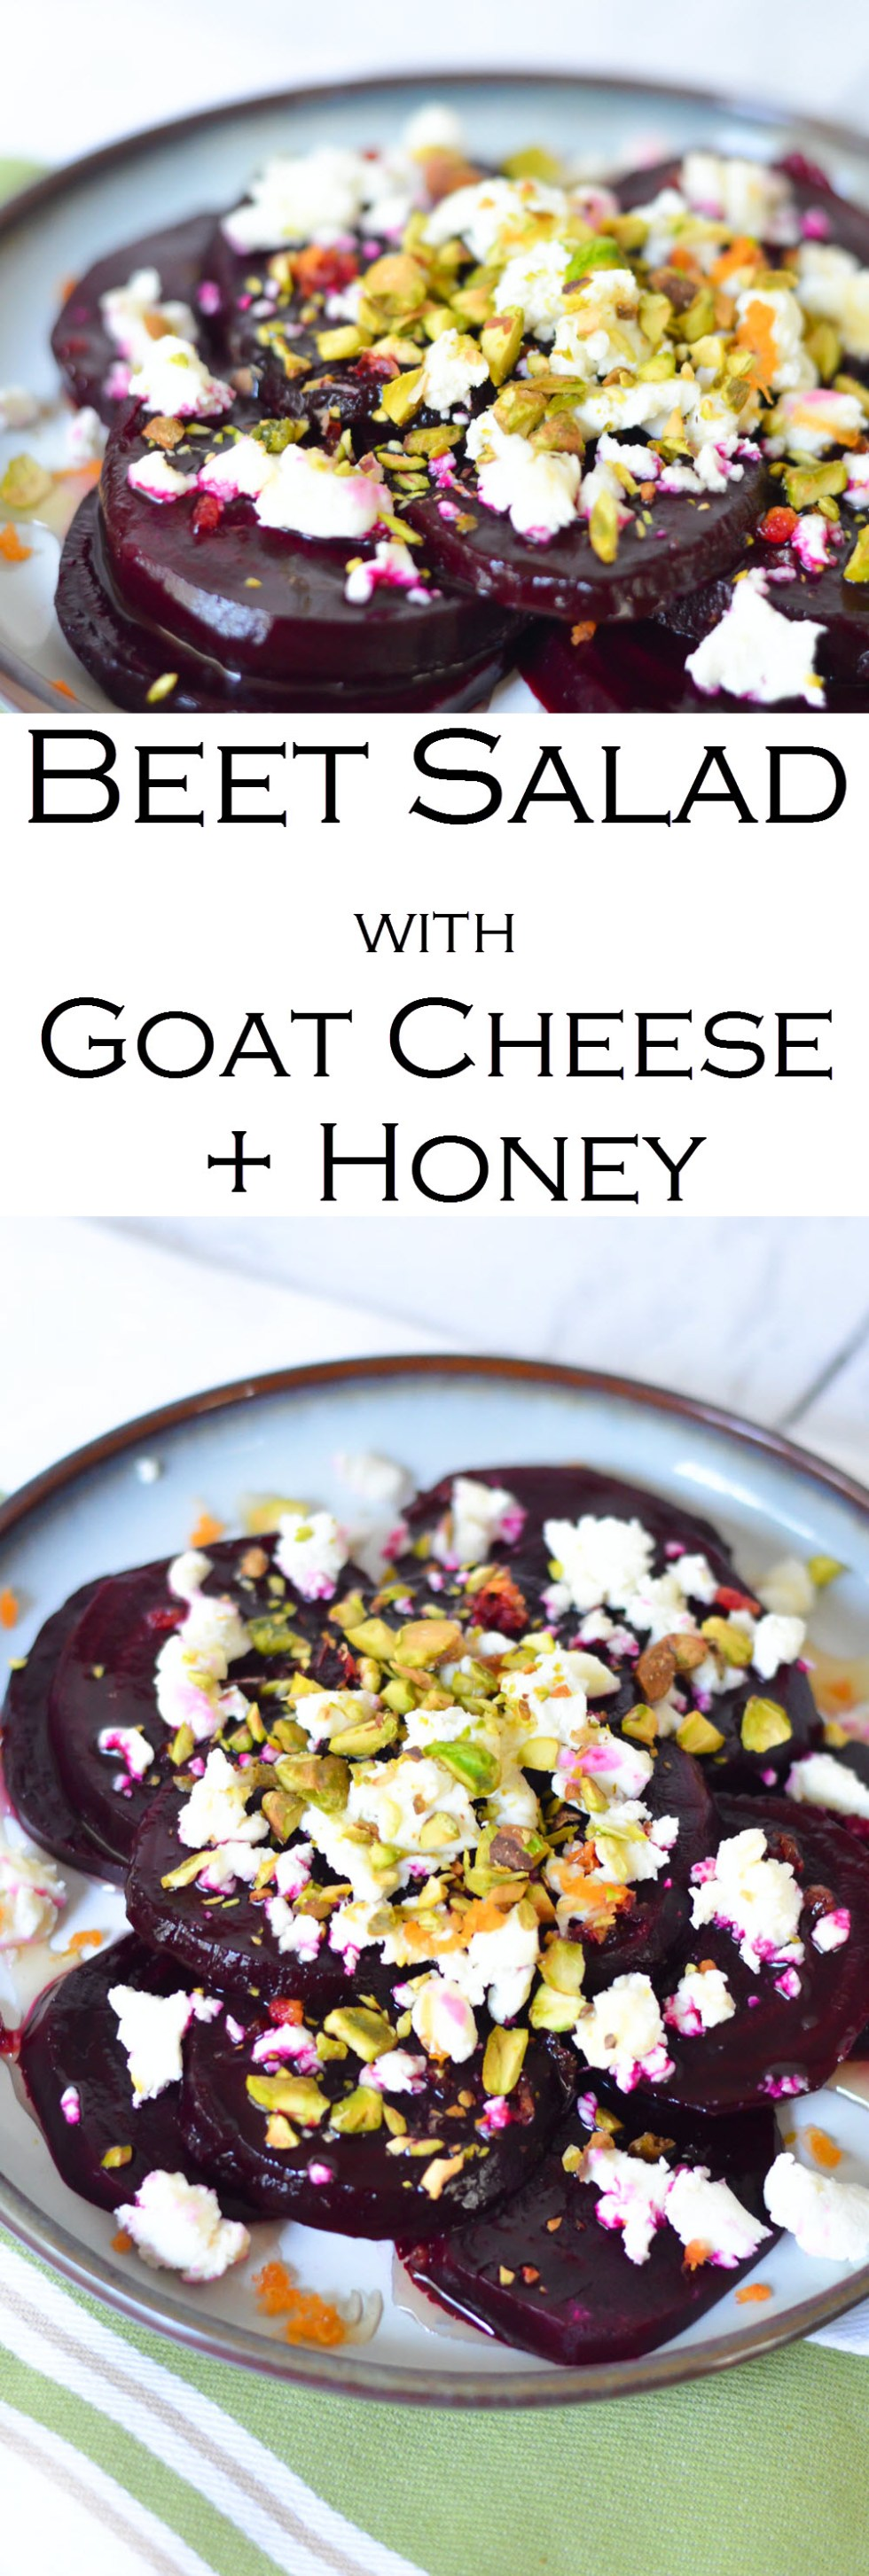 Cold Beet Salad w. Goat Cheese, Honey, + Pistachios